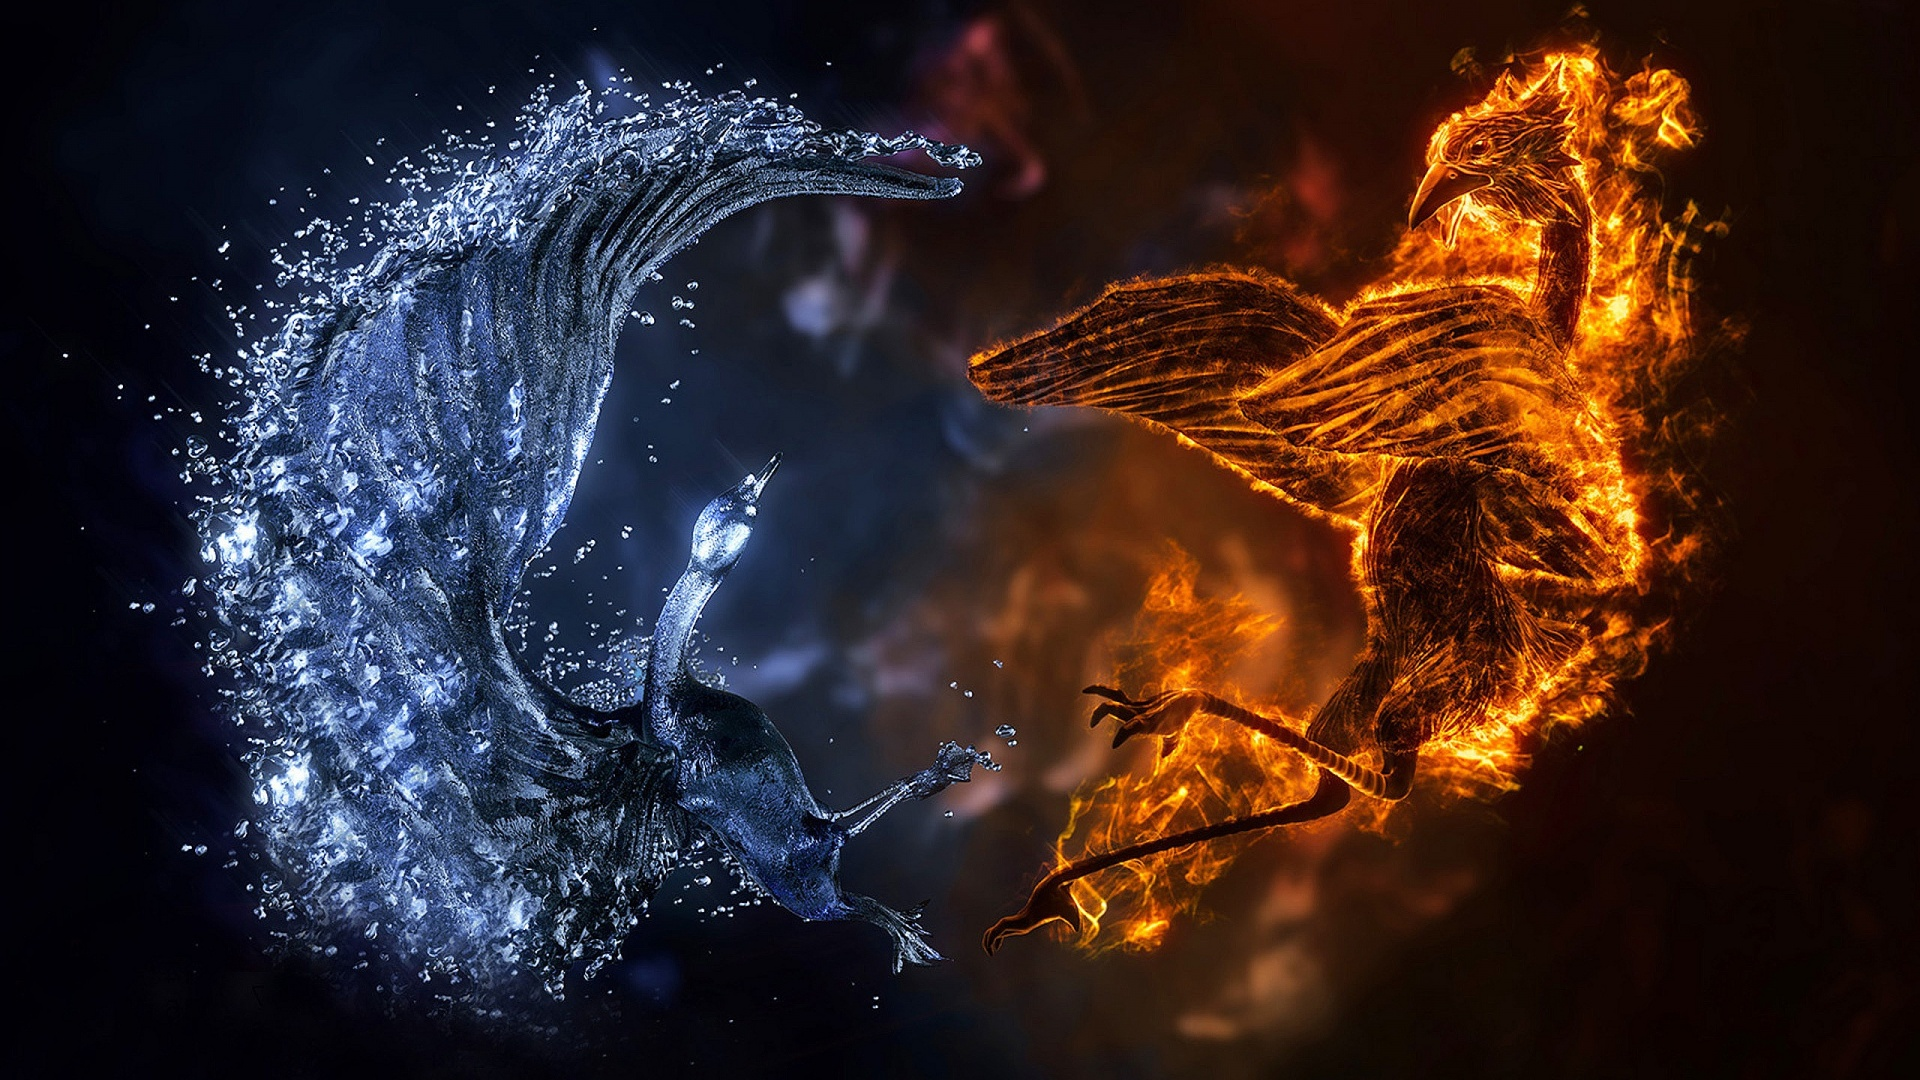 fire and ice For today's entry, an exercise in contrasts: fire and ice fire can be a life-sustaining, constructive element, or, at worst, a powerfully destructive force - something we humans continue to use, play with, and struggle to control.